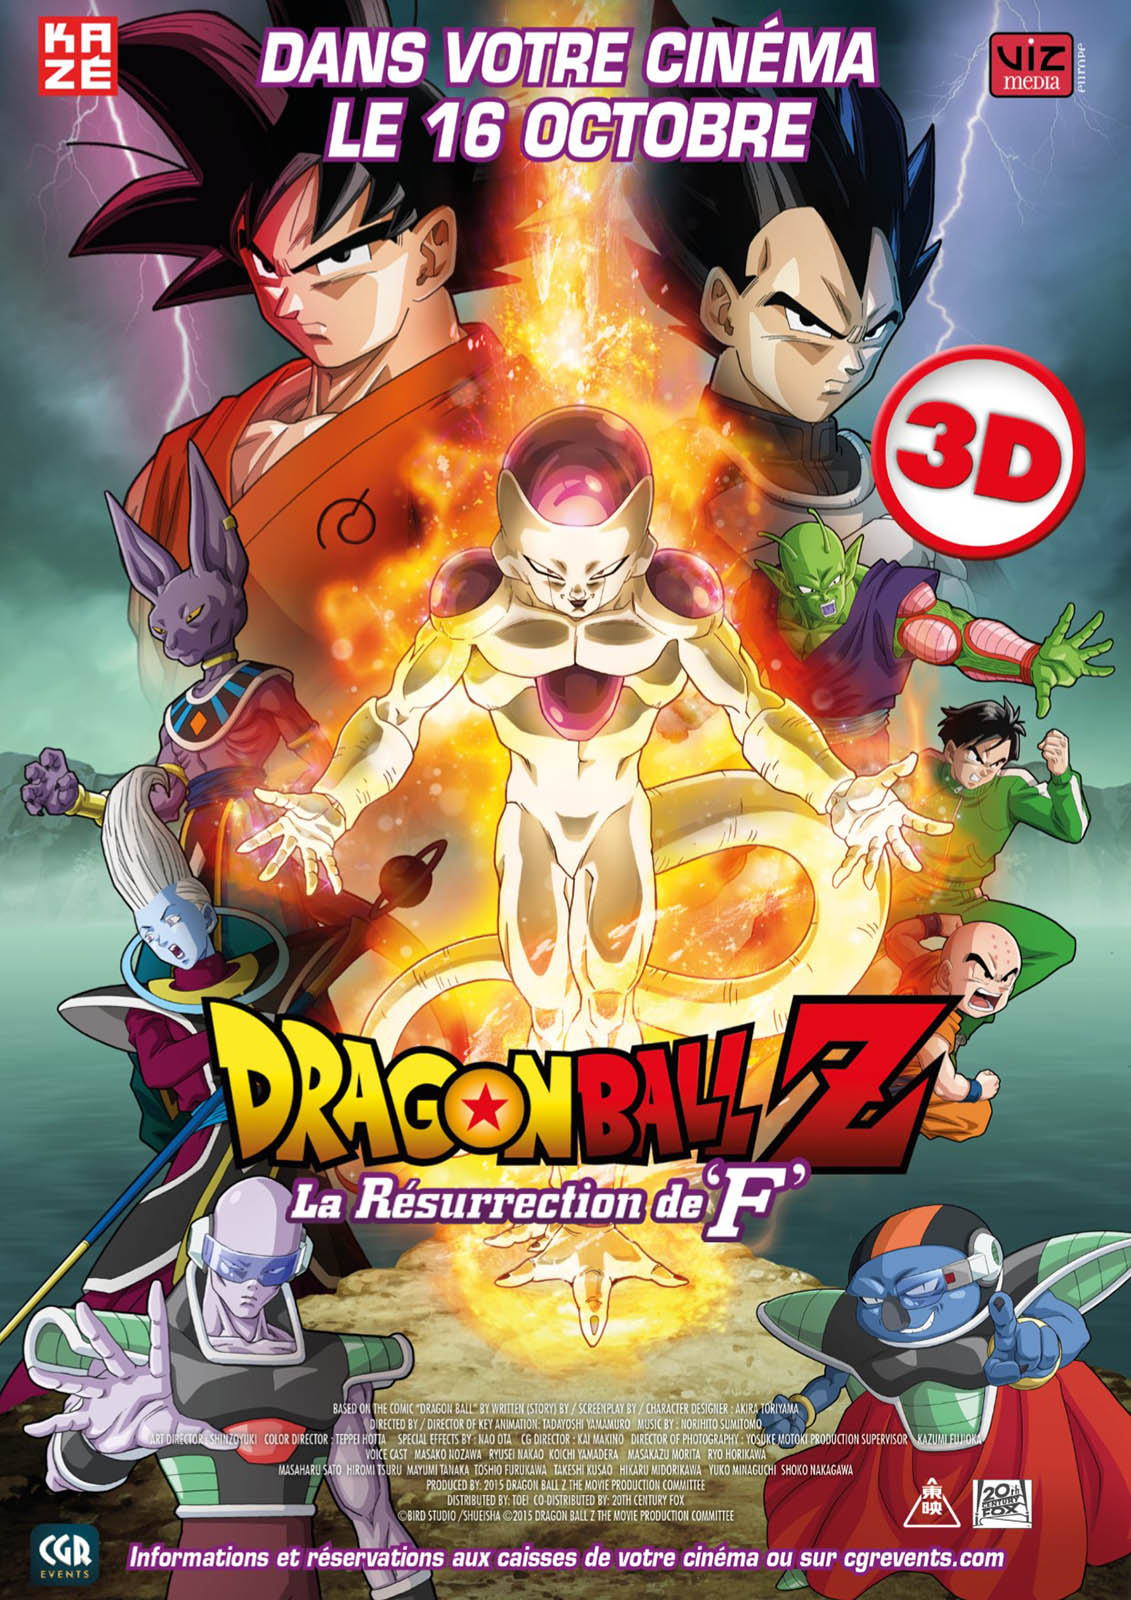 Dbz streaming fr